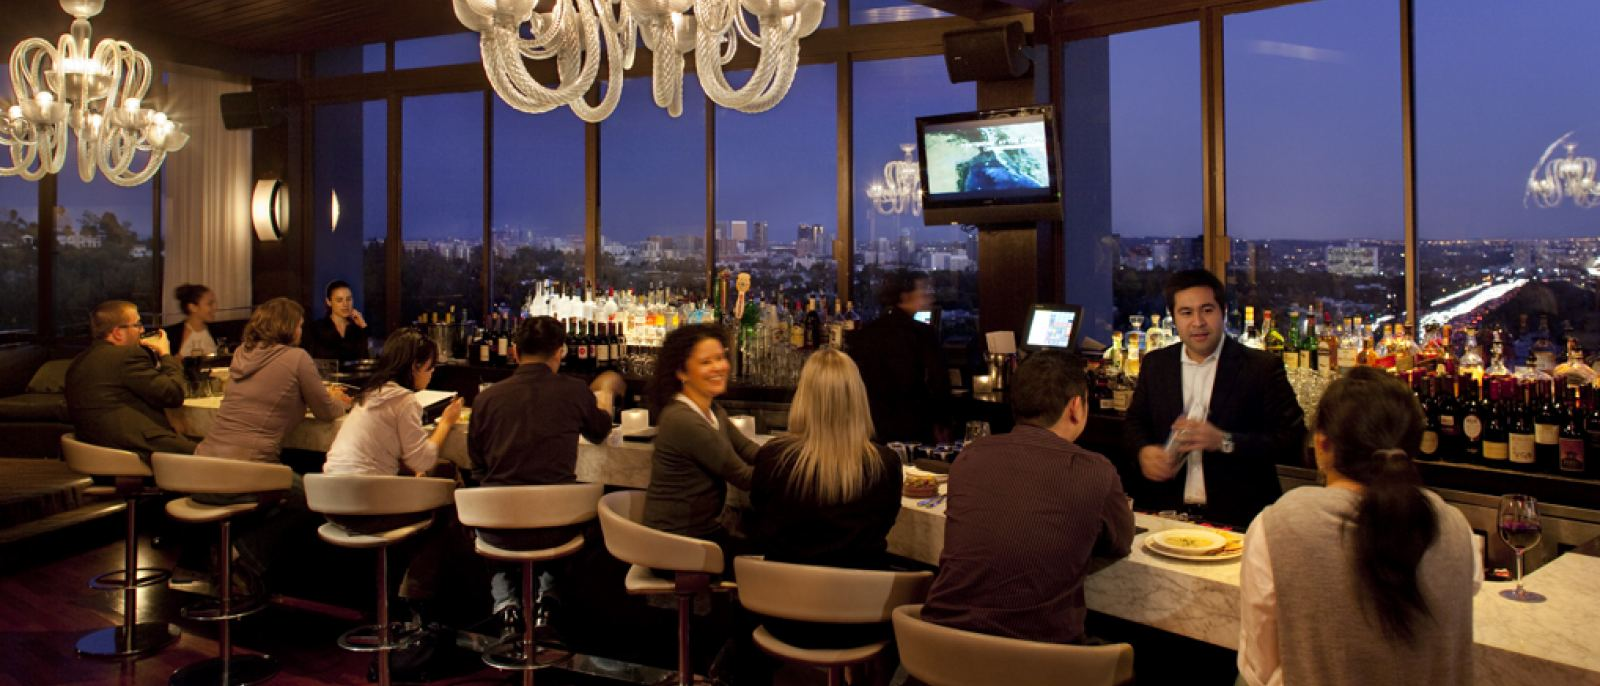 West Restaurant and Lounge at Hotel Angeleno